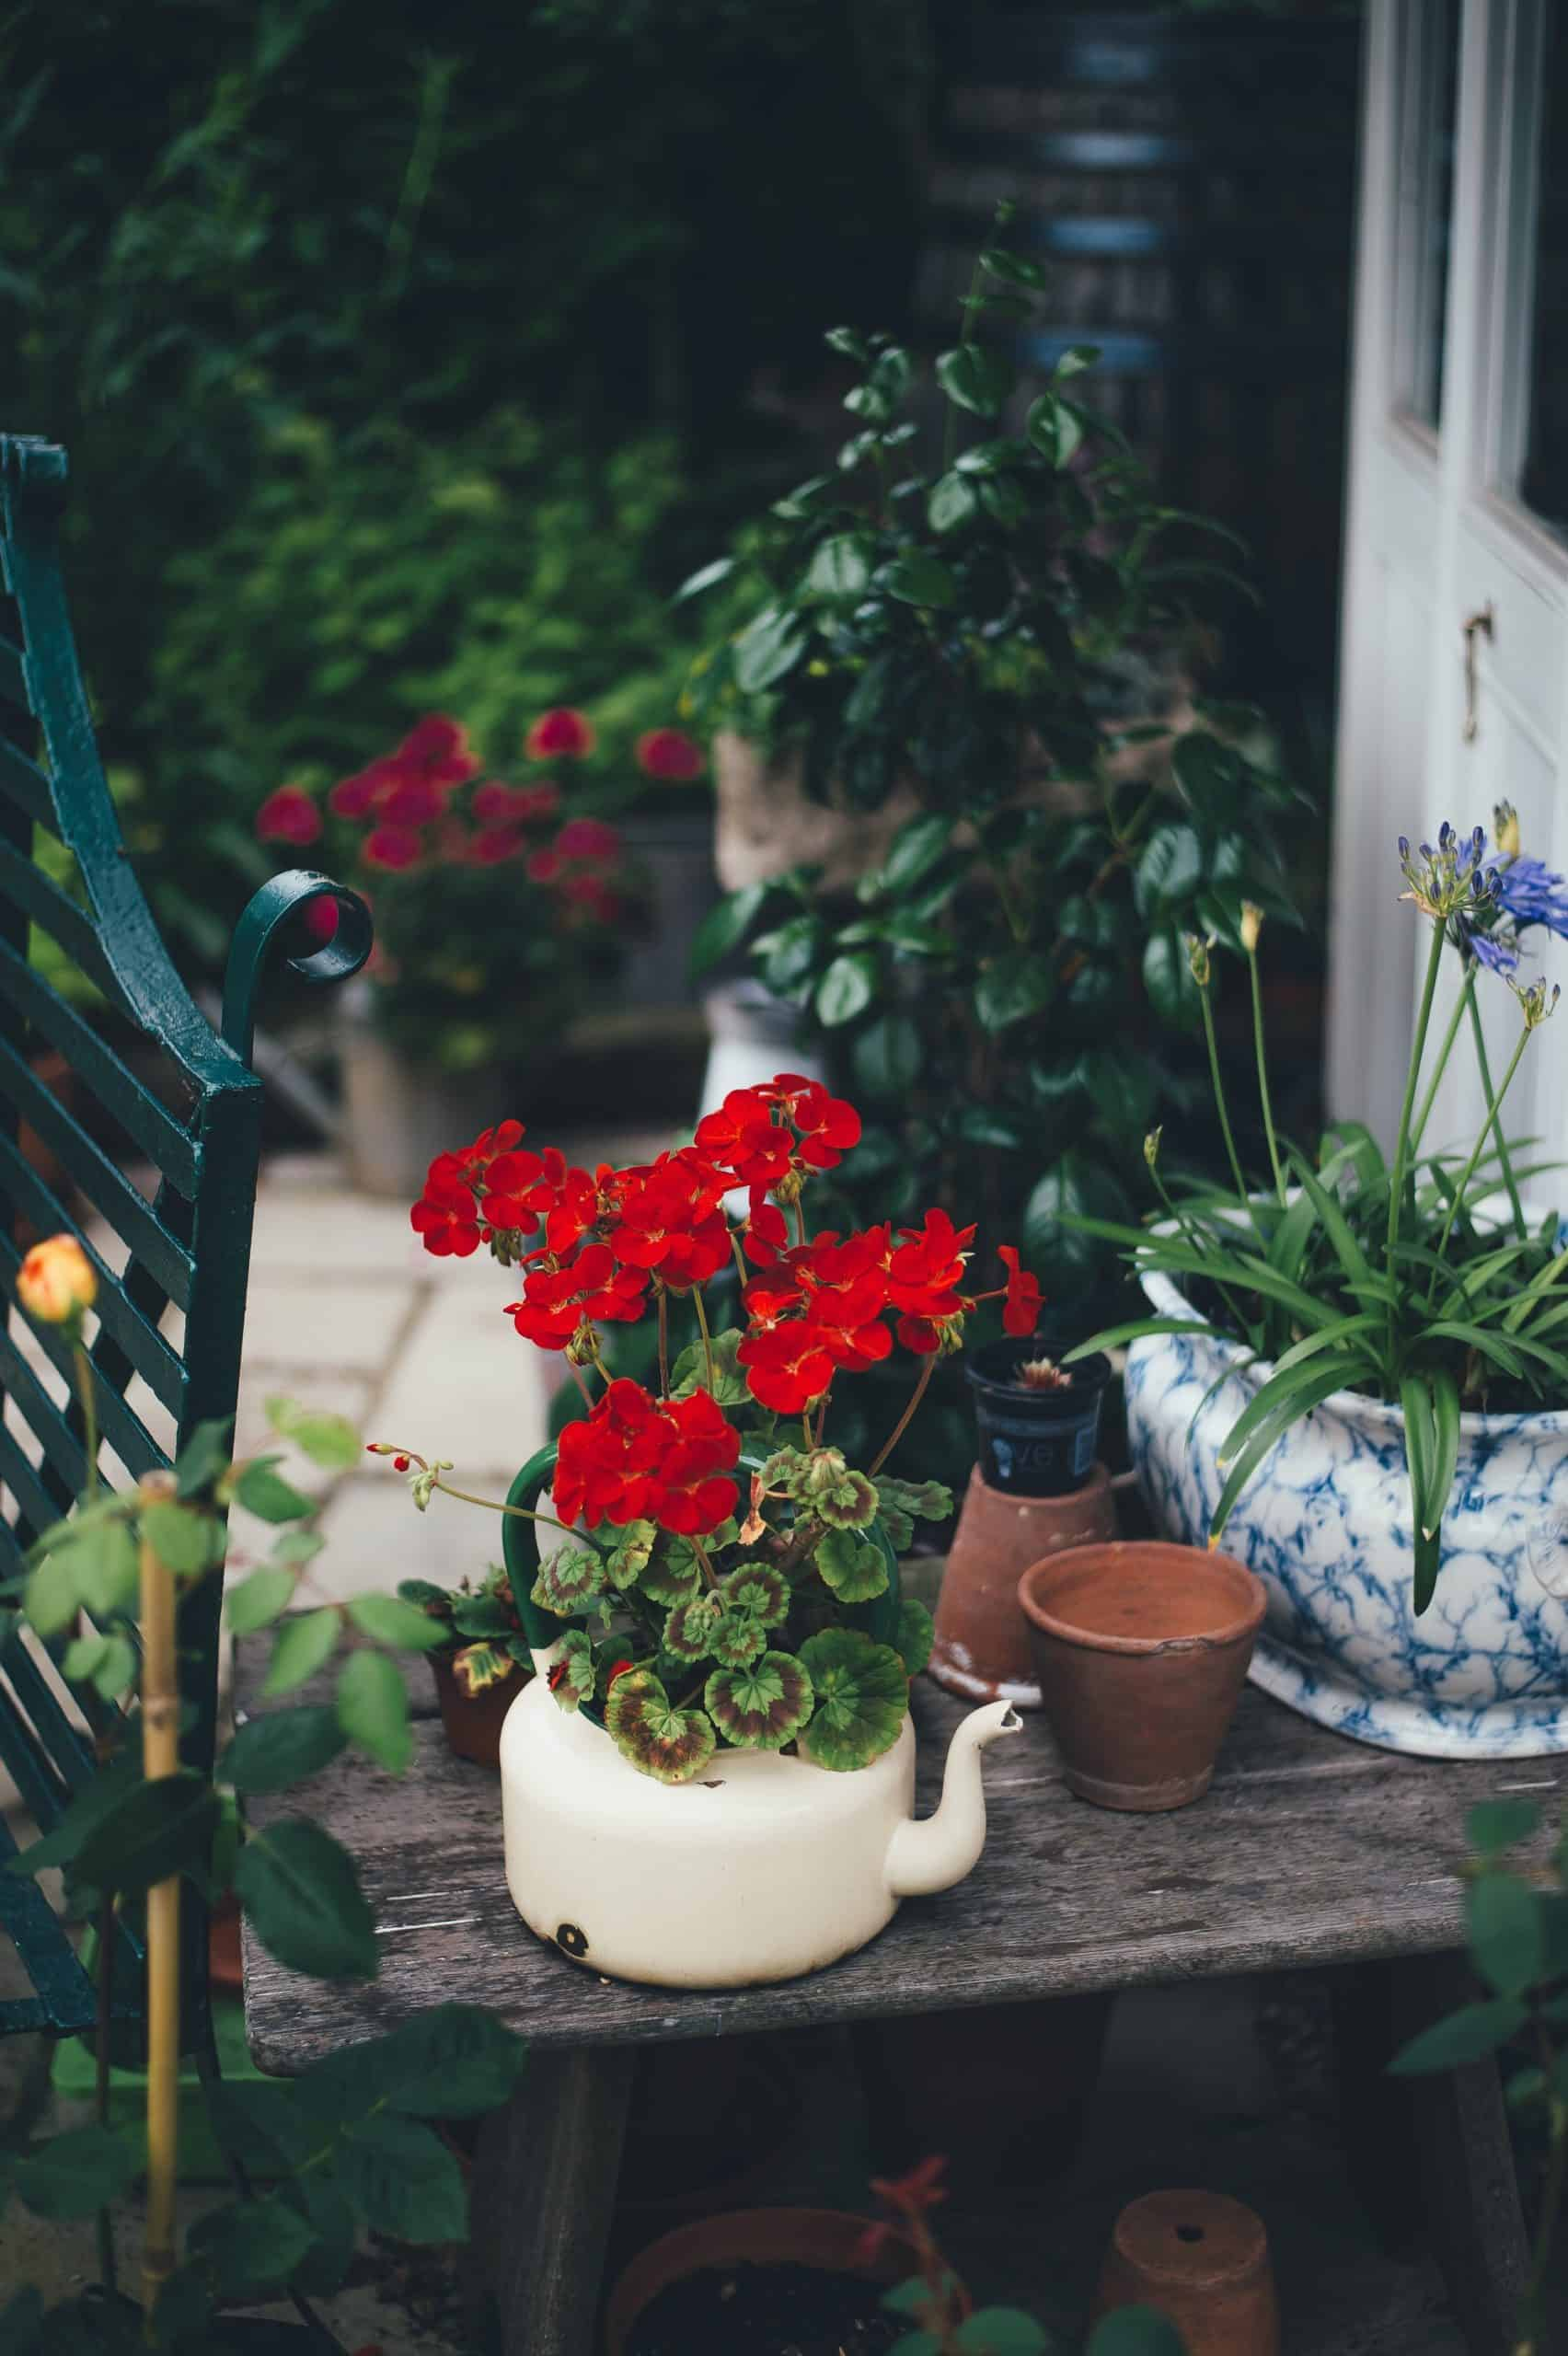 Get The Most From Your Garden Tools For Years To Come